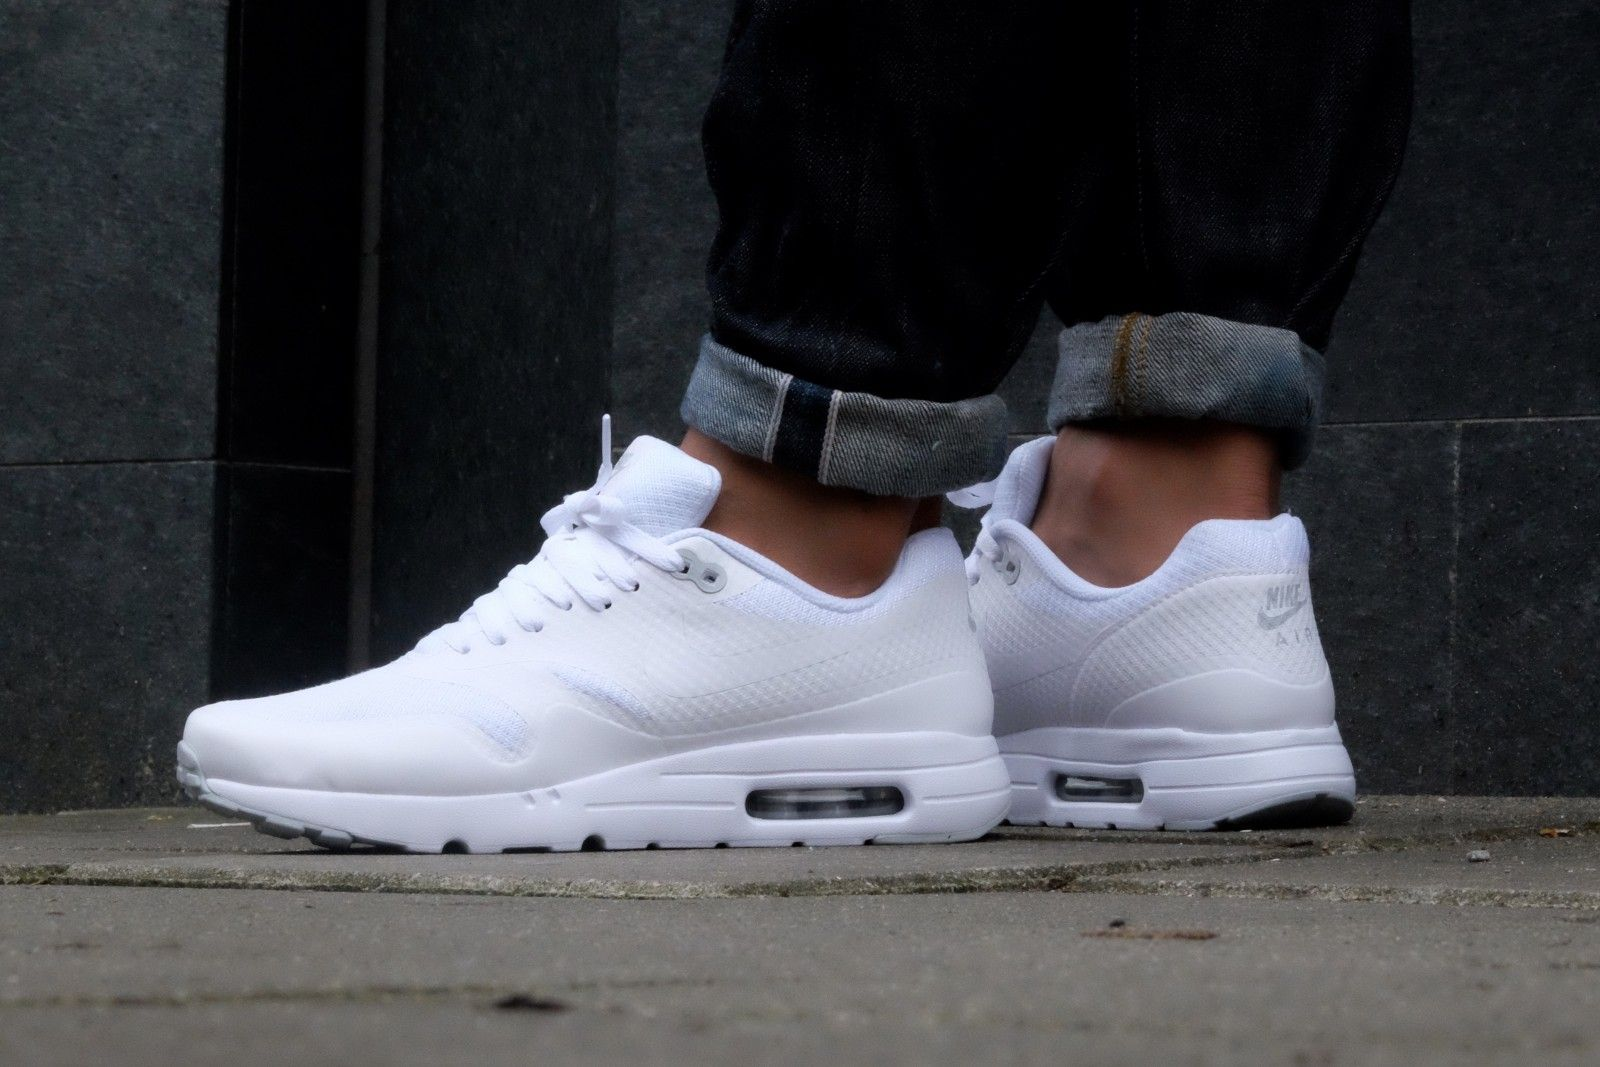 size 40 a4ef5 f0902 ... low cost nike air max 1 ultra essential white white 819476 105 nike air  max 2aee5